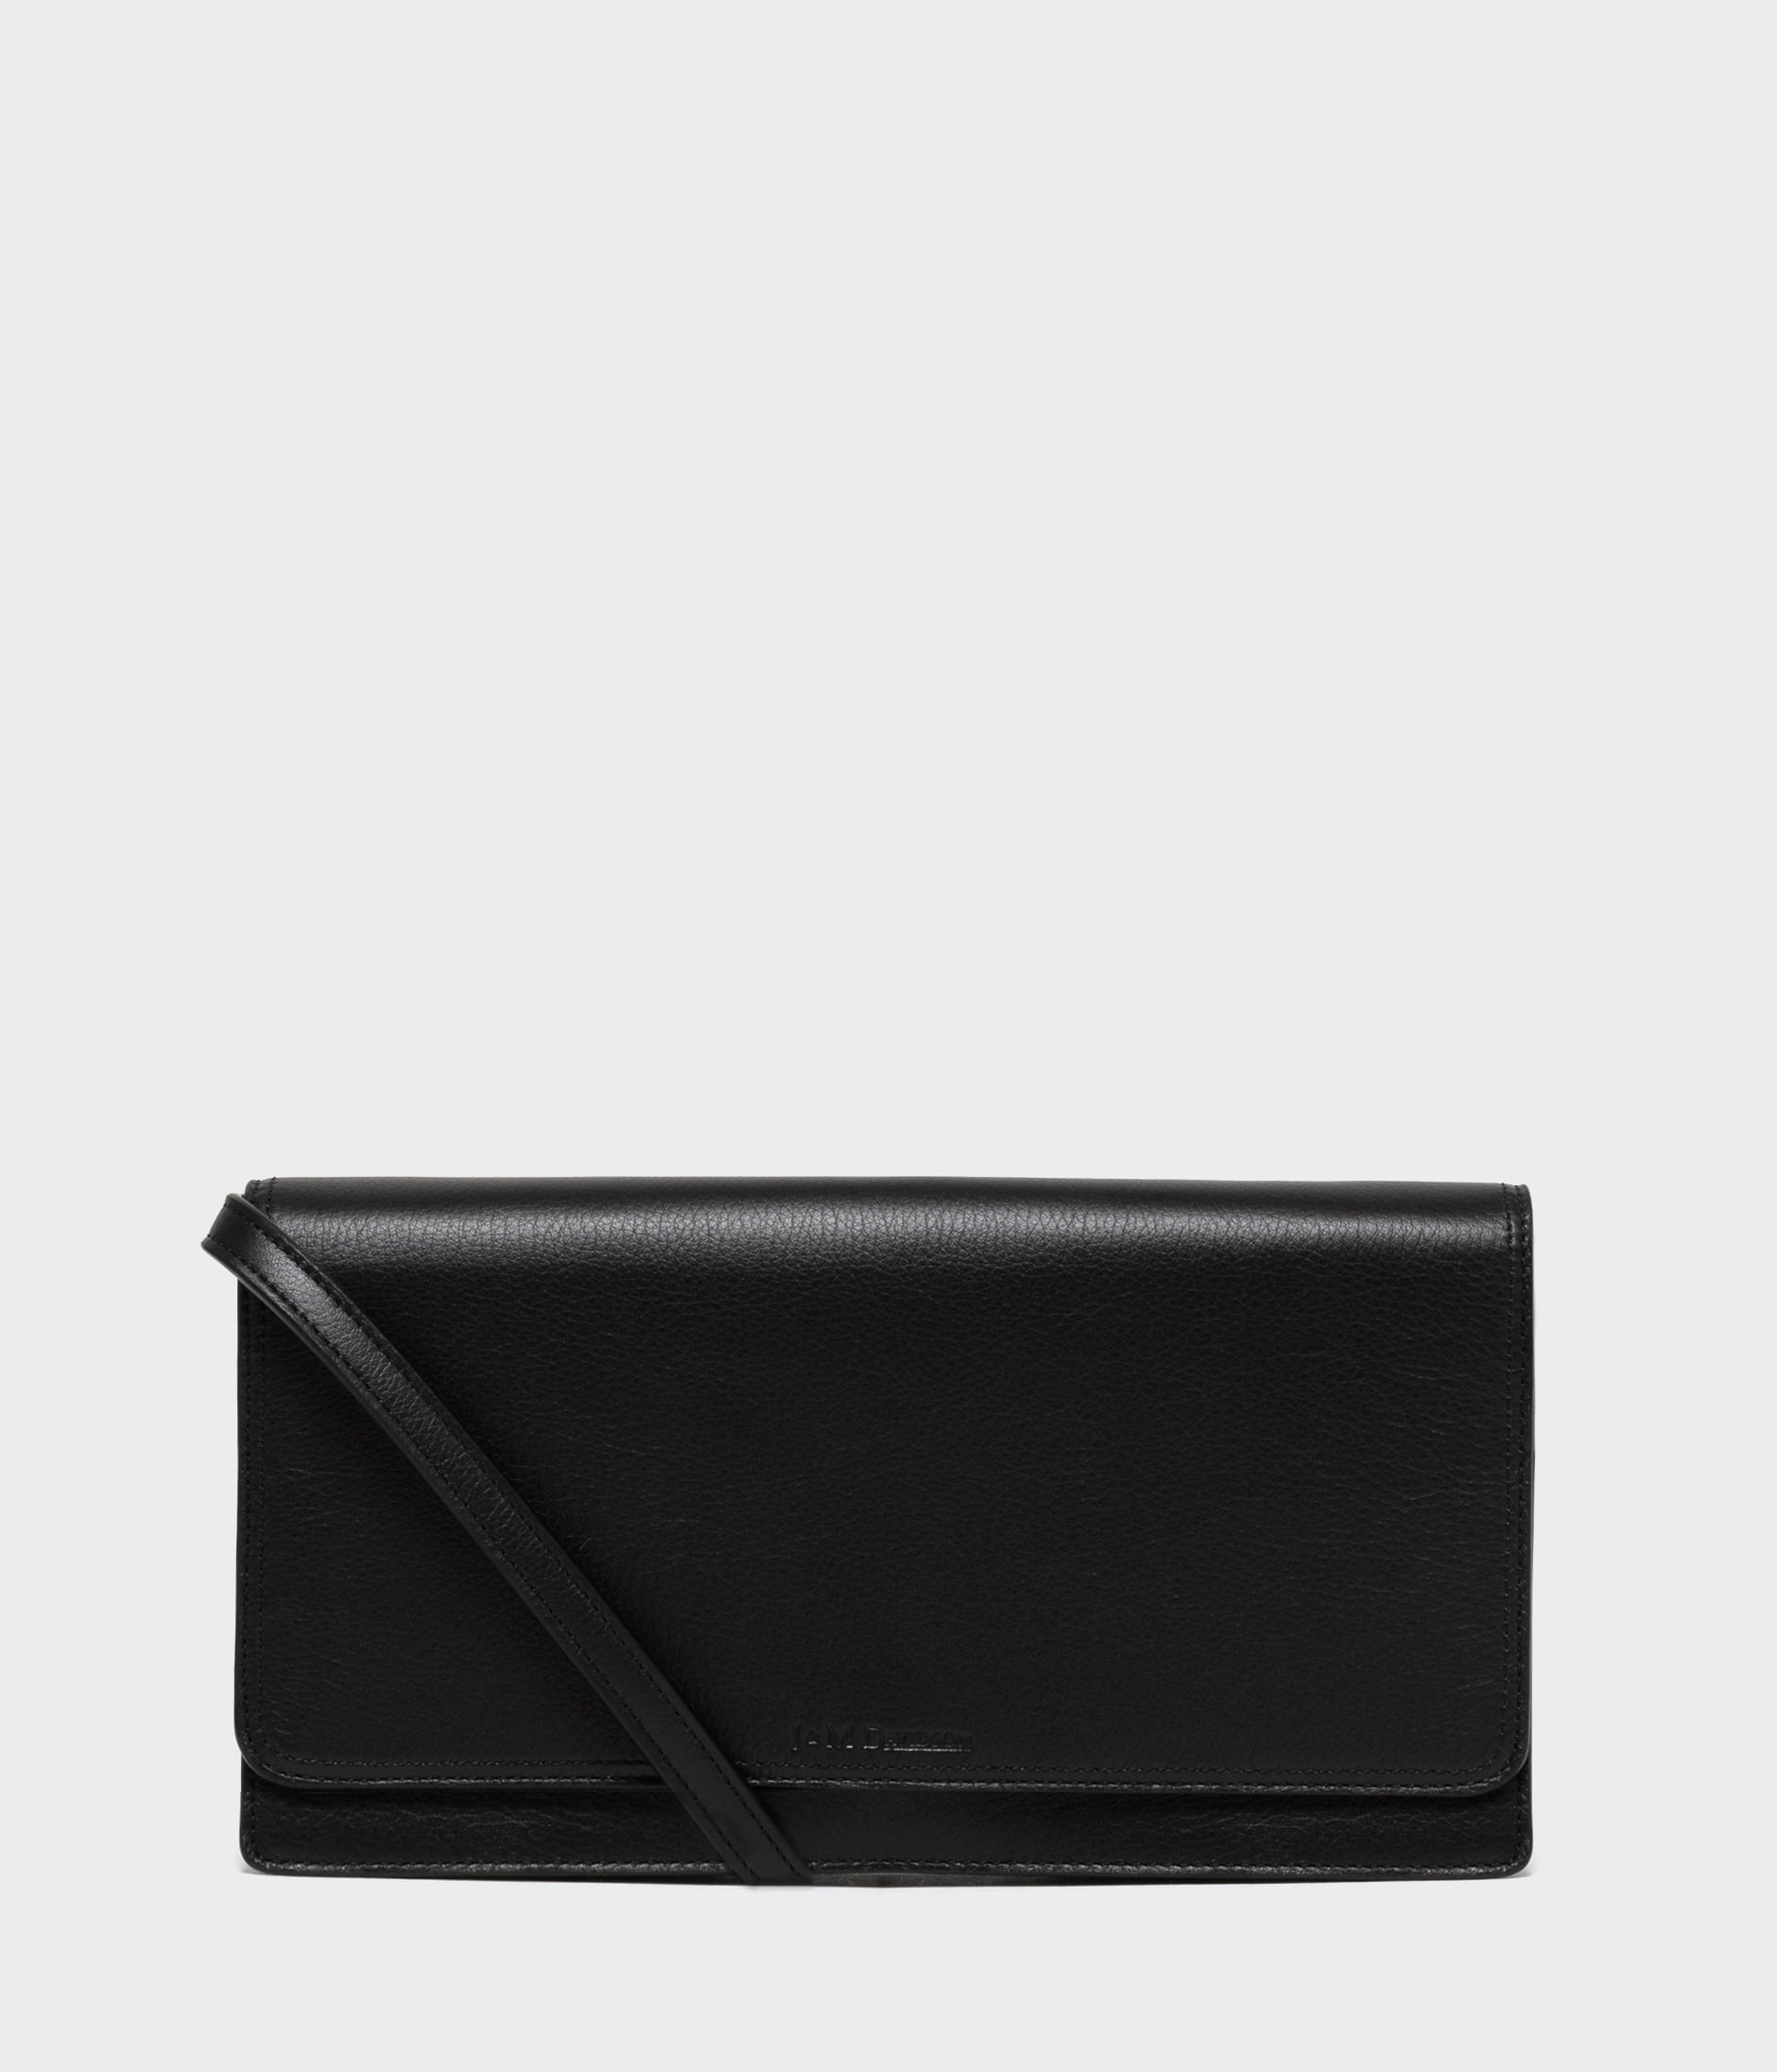 E/W CROSS BODY POUCH 詳細画像 BLACK 1